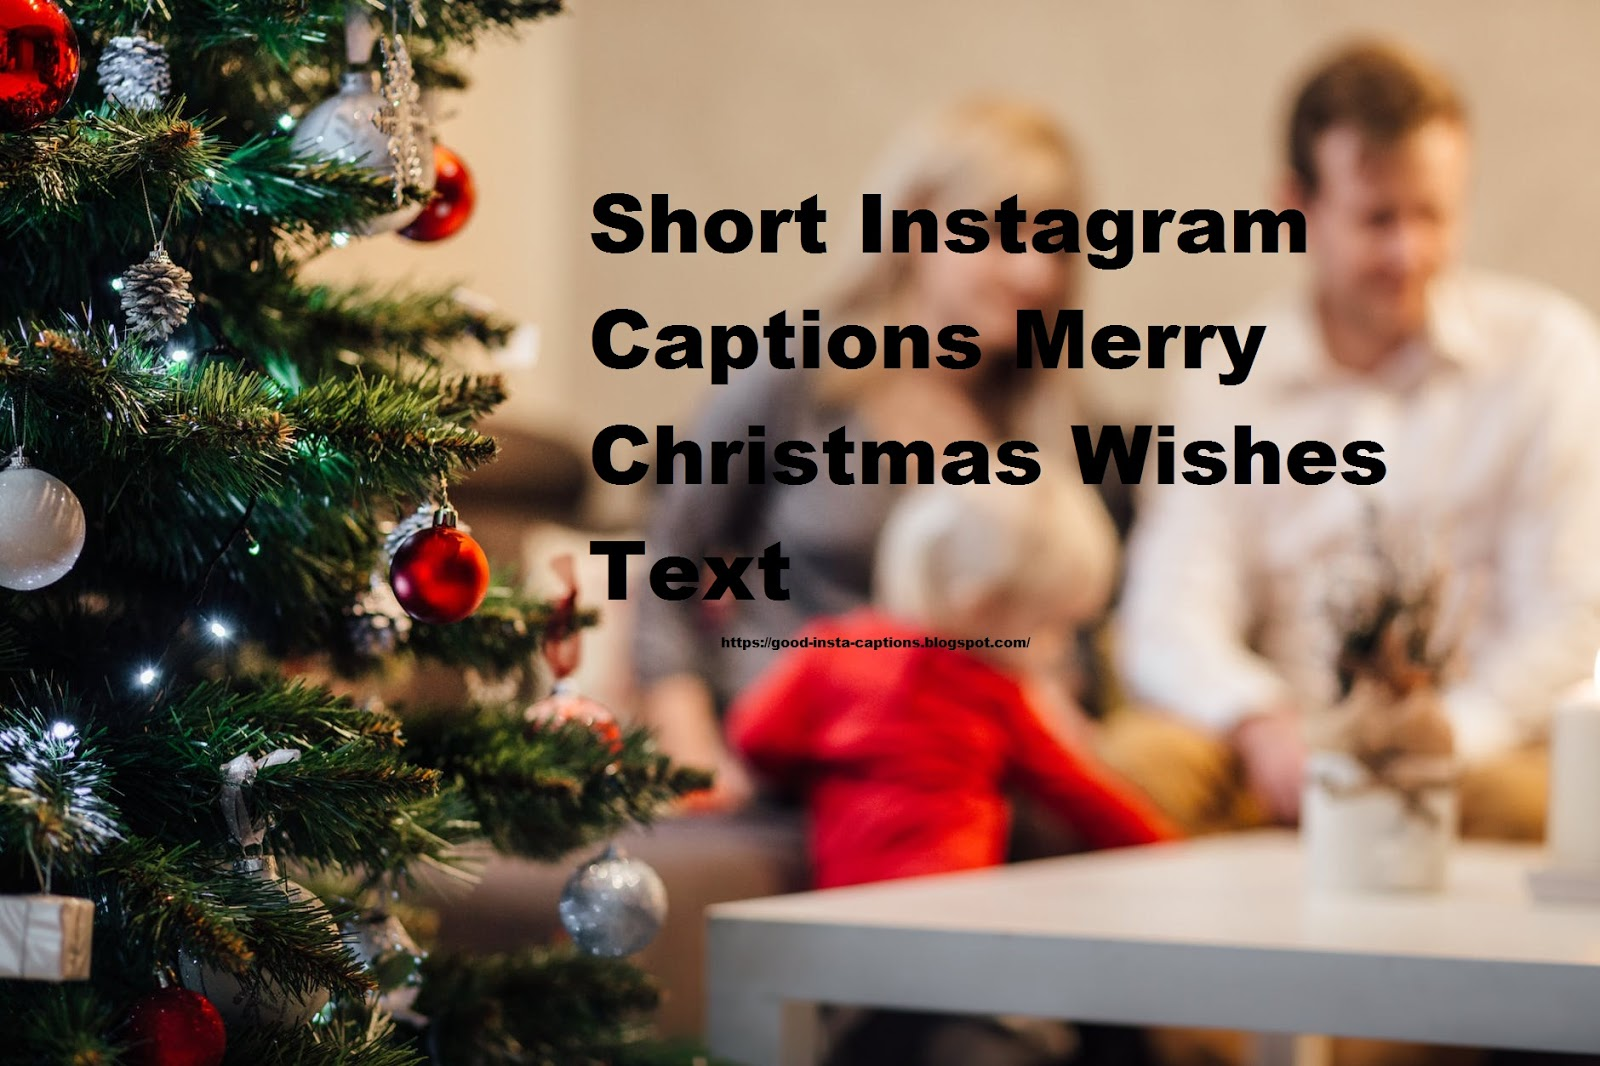 Short Instagram Captions Merry Christmas Wishes Text